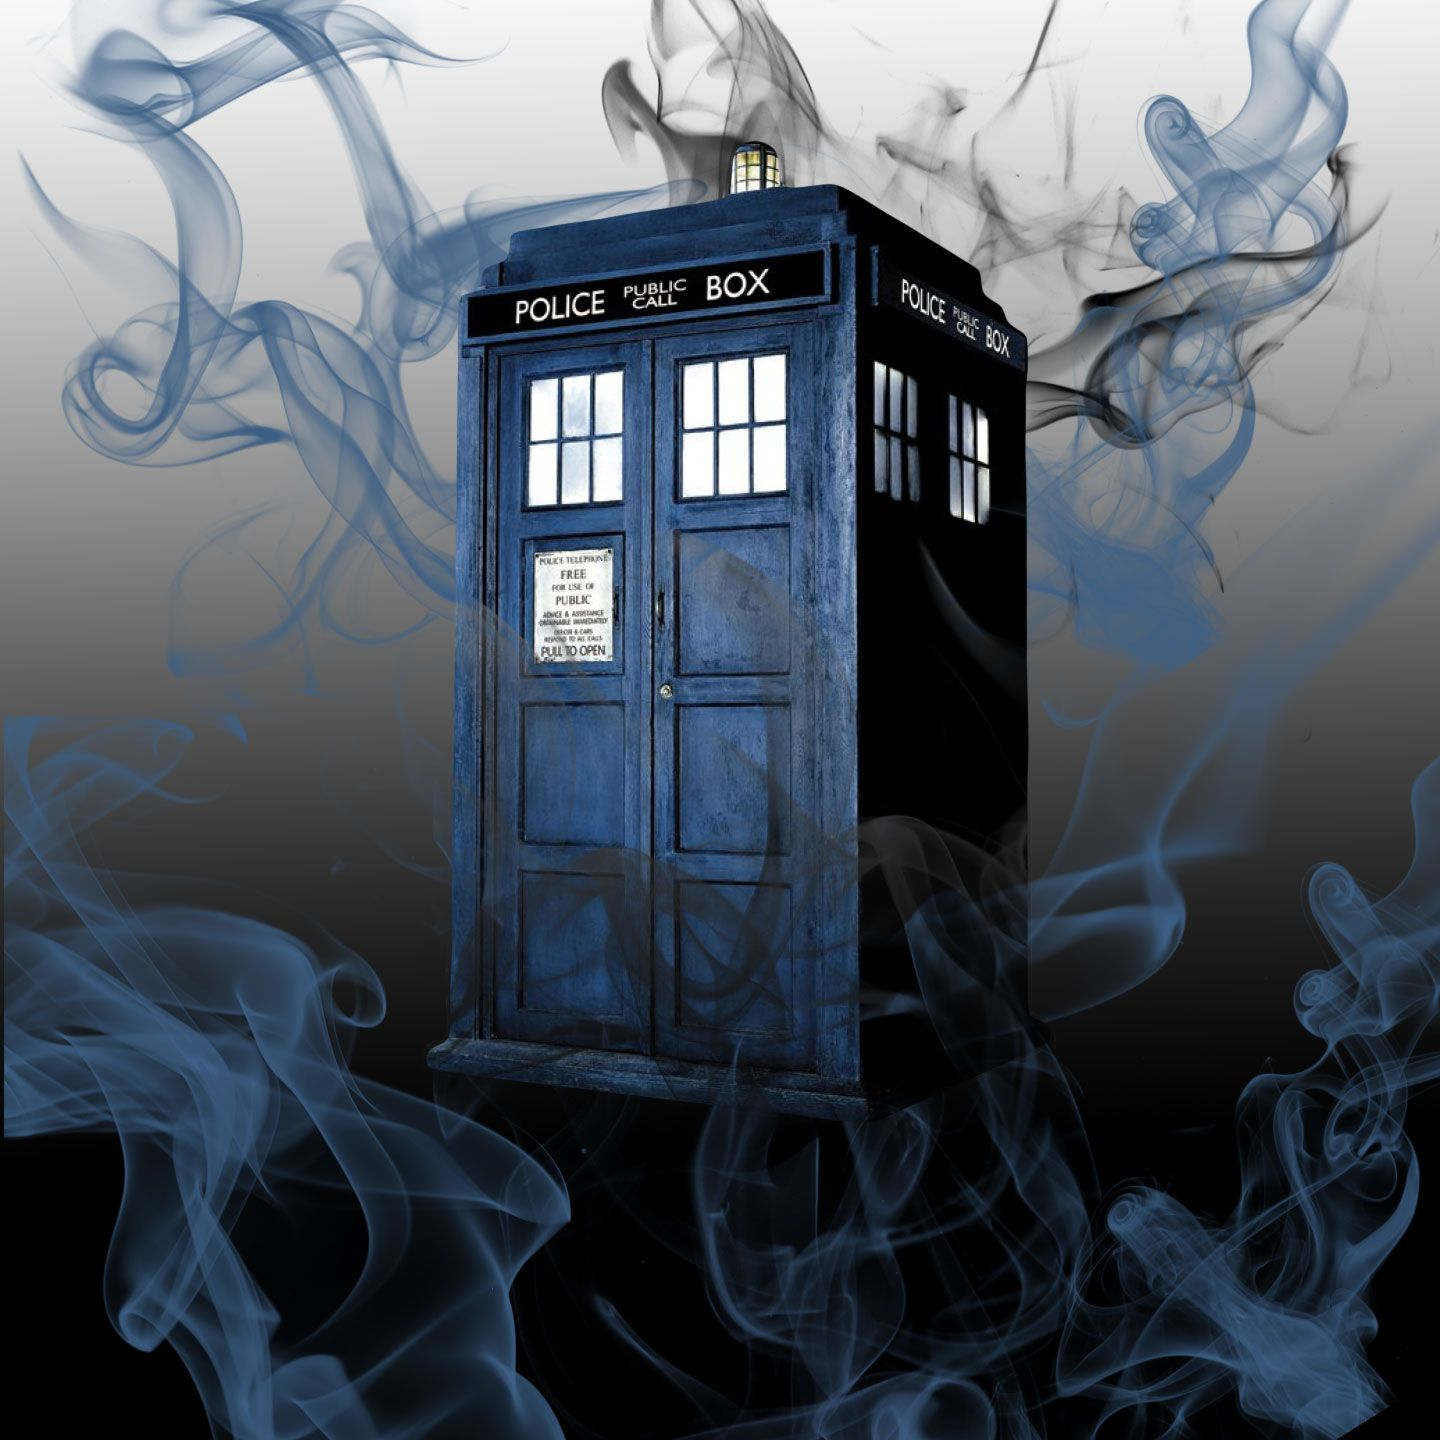 Doctor Who abstract art by omlpatches.com